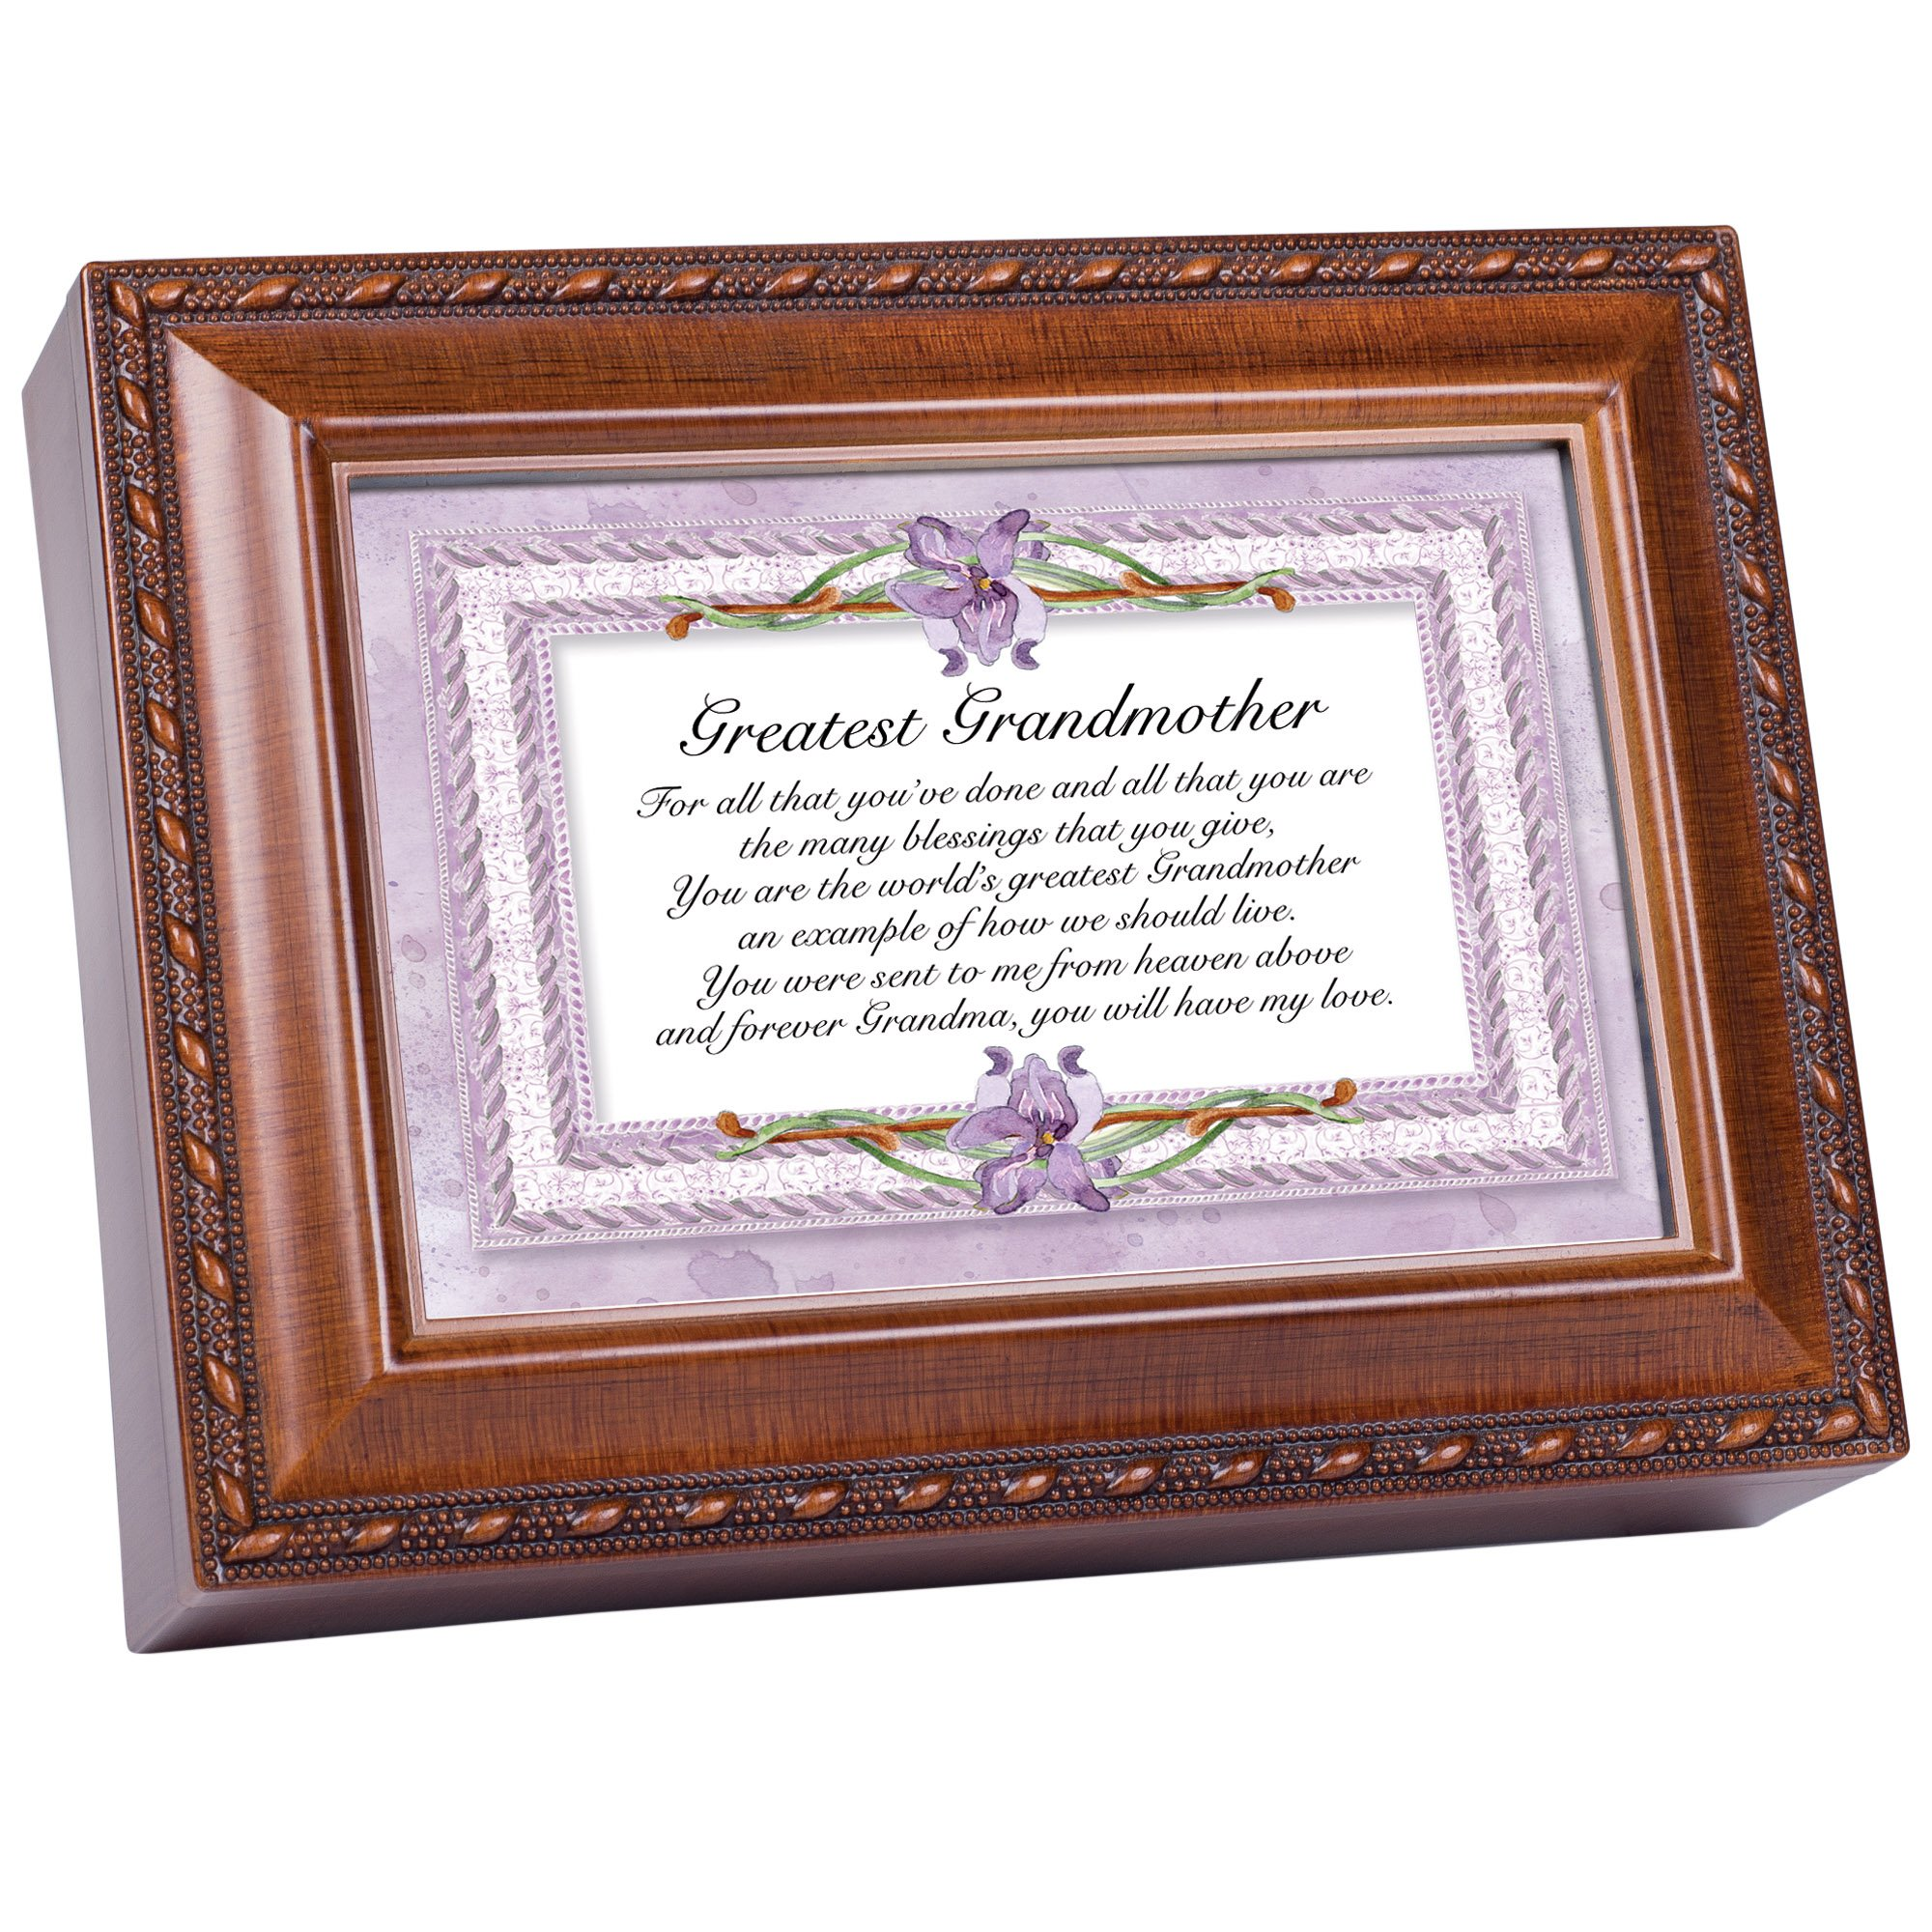 Cottage Garden Greatest Grandmother Woodgrain Music Box Plays Wind Beneath Wings